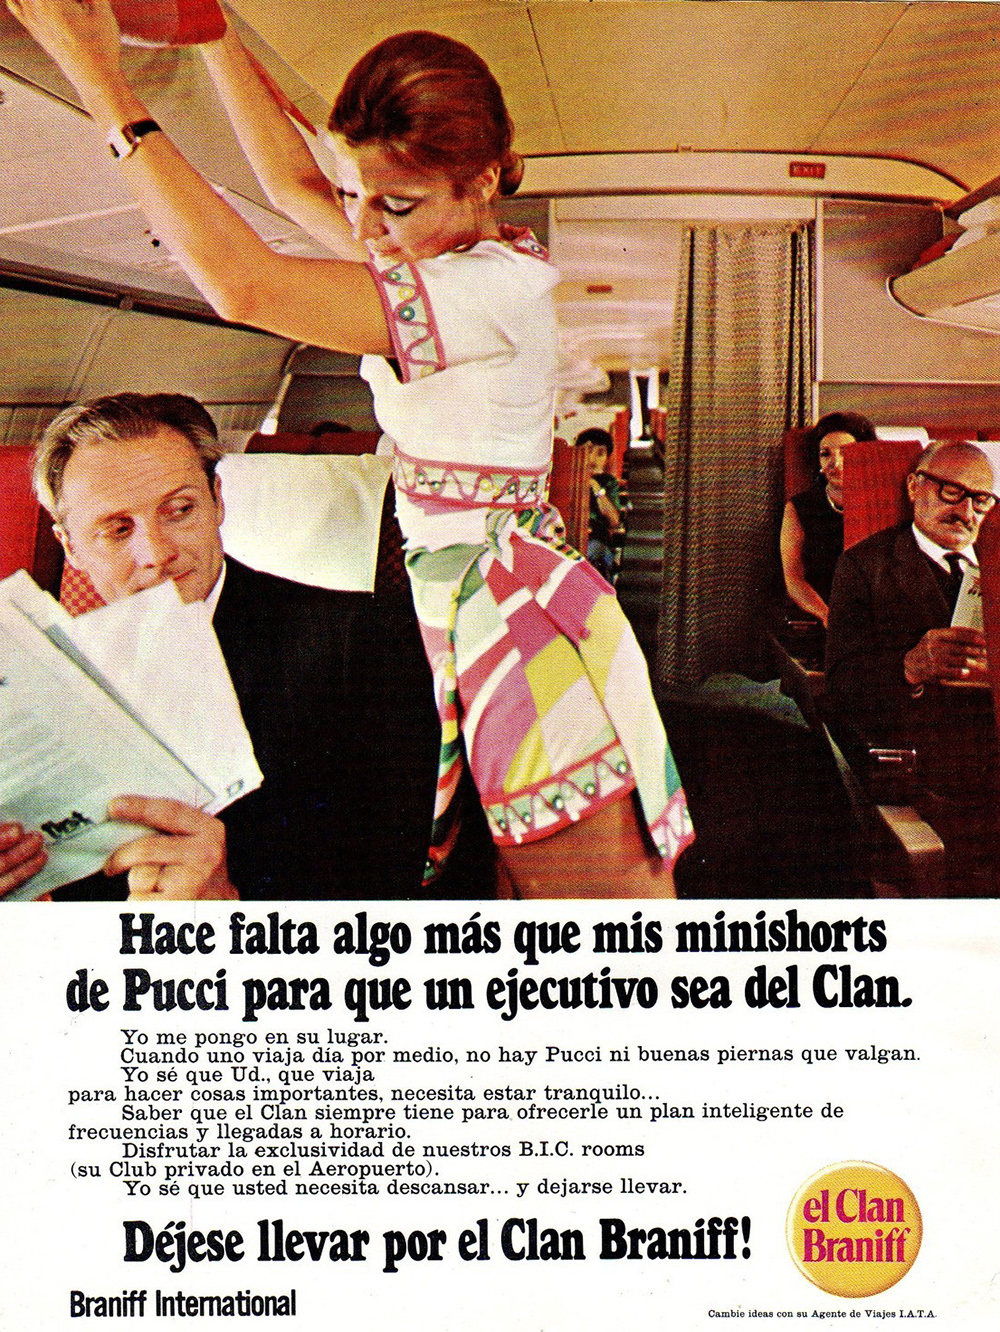 Braniff airline ad